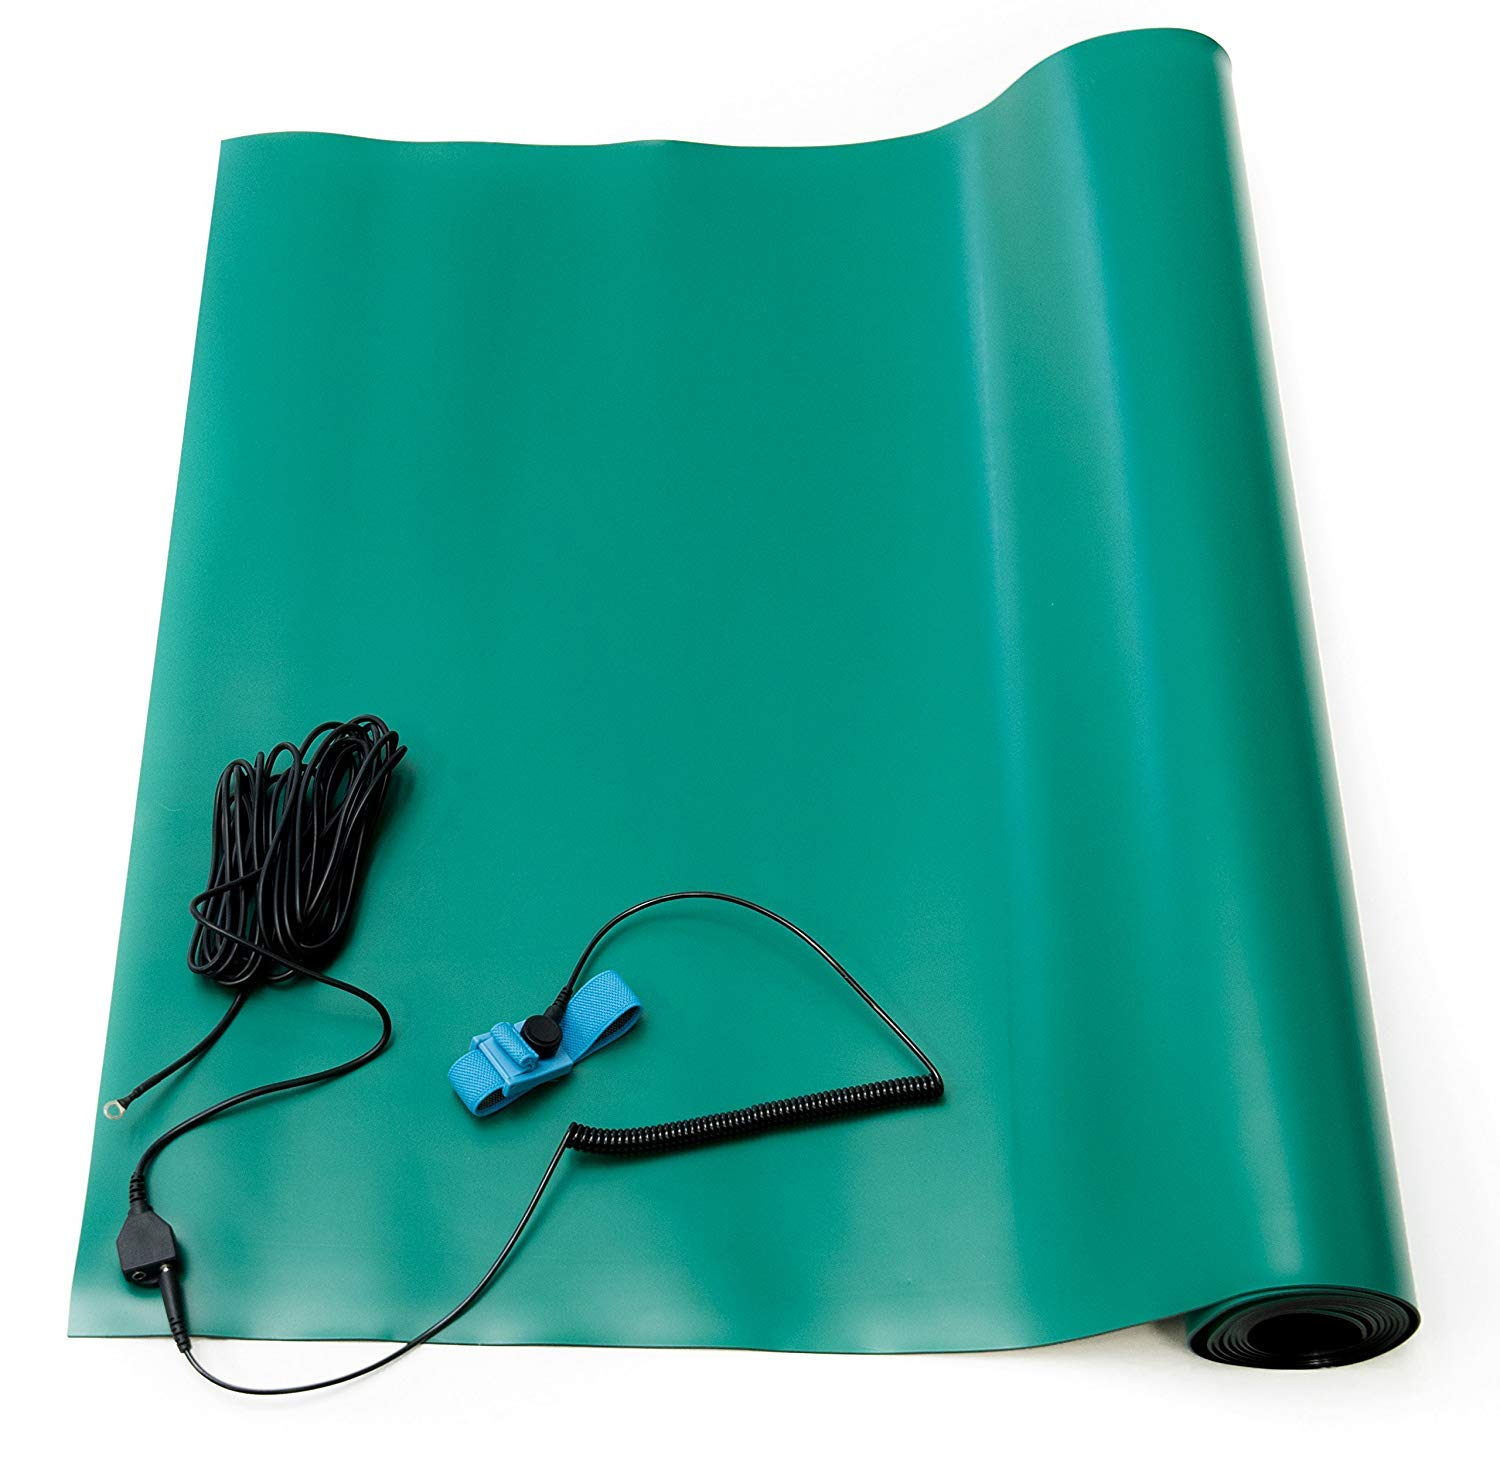 2.5 Wide x 4 Long x 0.08 Thick Bertech ESD High Temperature Rubber Mat Kit with a Wrist Strap and a Grounding Cord Blue